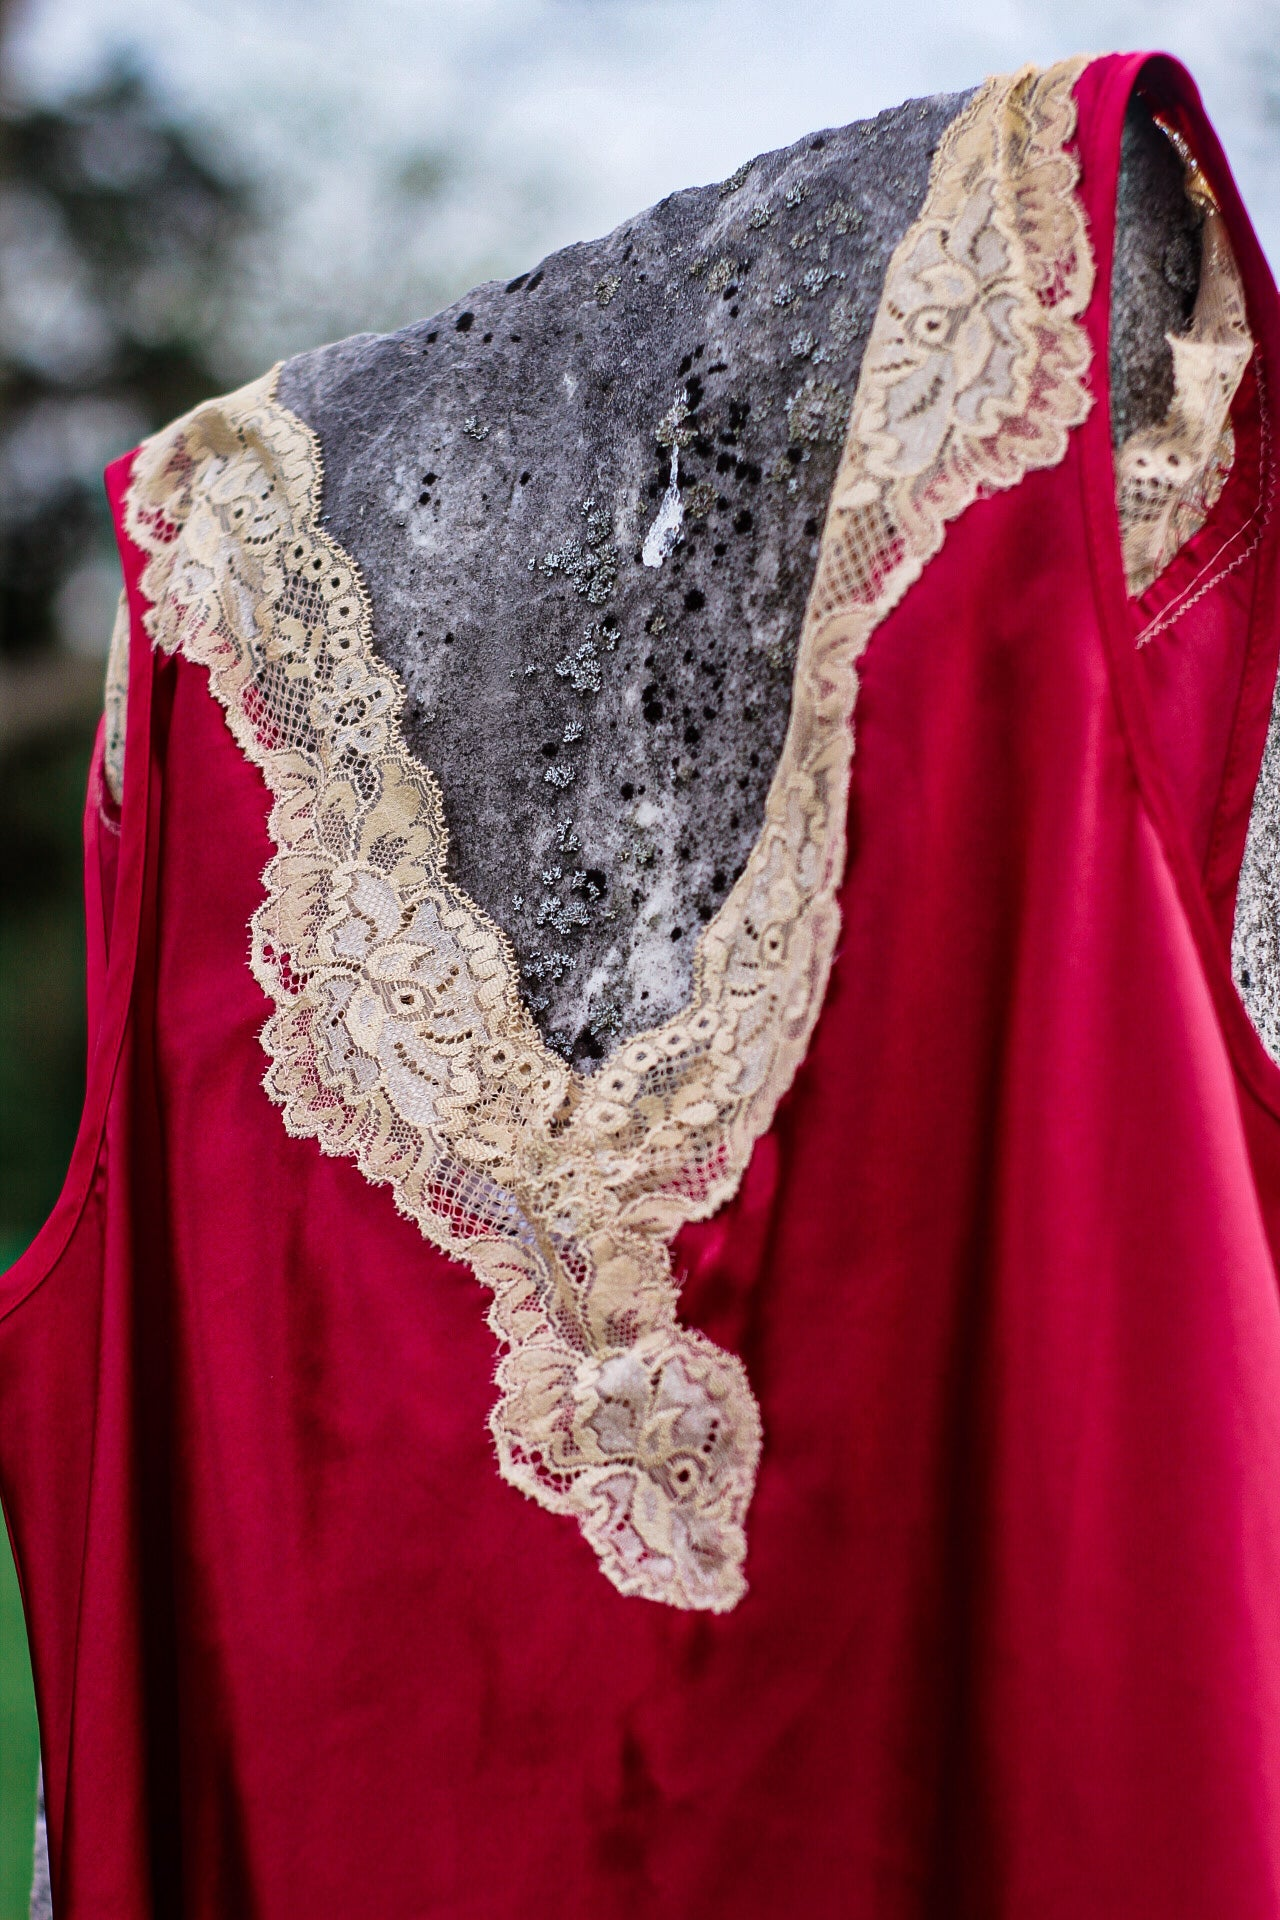 Red Slip with White Lace